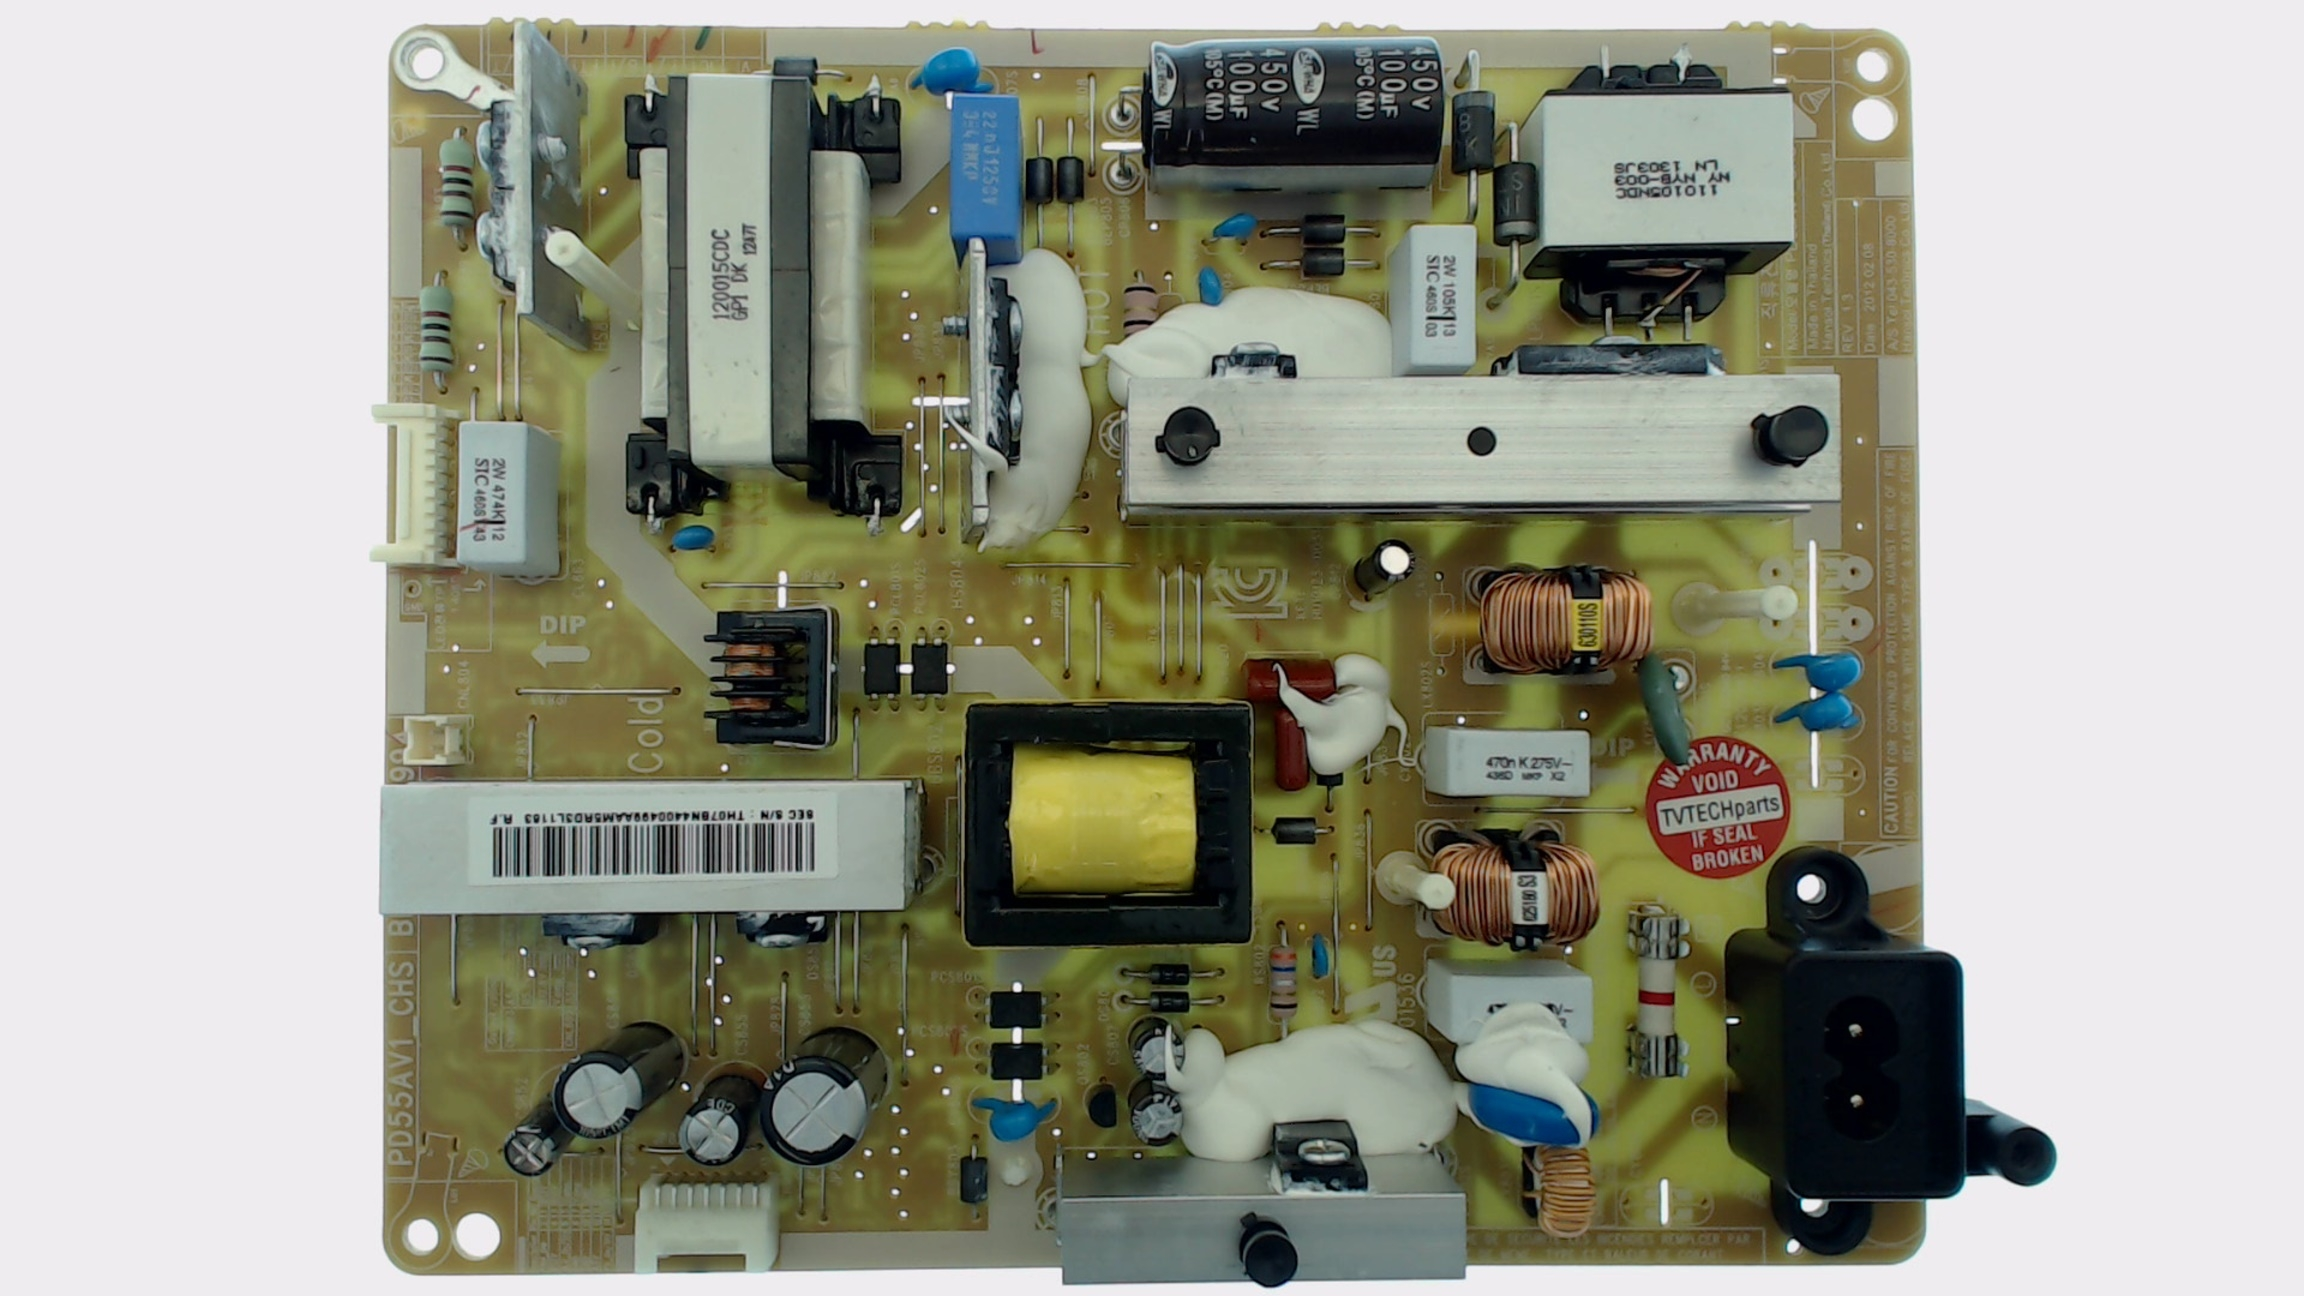 Samsung Tv Model Un46eh6000 Power Supply Board Part Number Bn44 00498a Circuit Parts Quick View